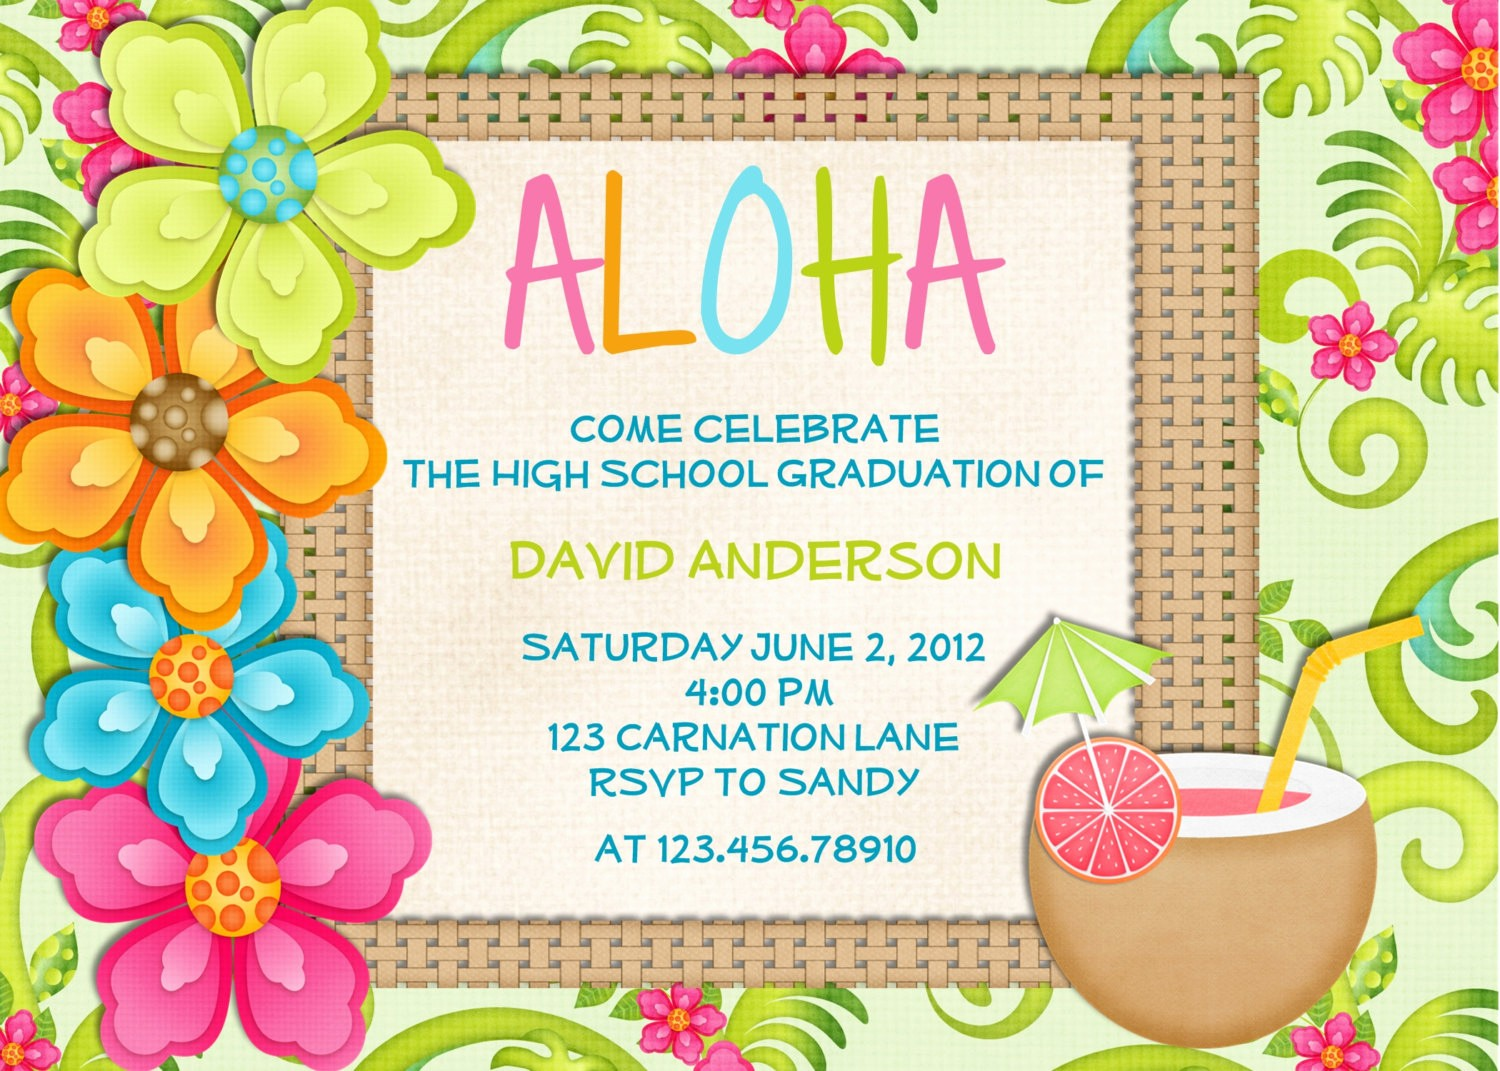 Luau Party Invitations Templates Free Beautiful 20 Luau Birthday Invitations Designs